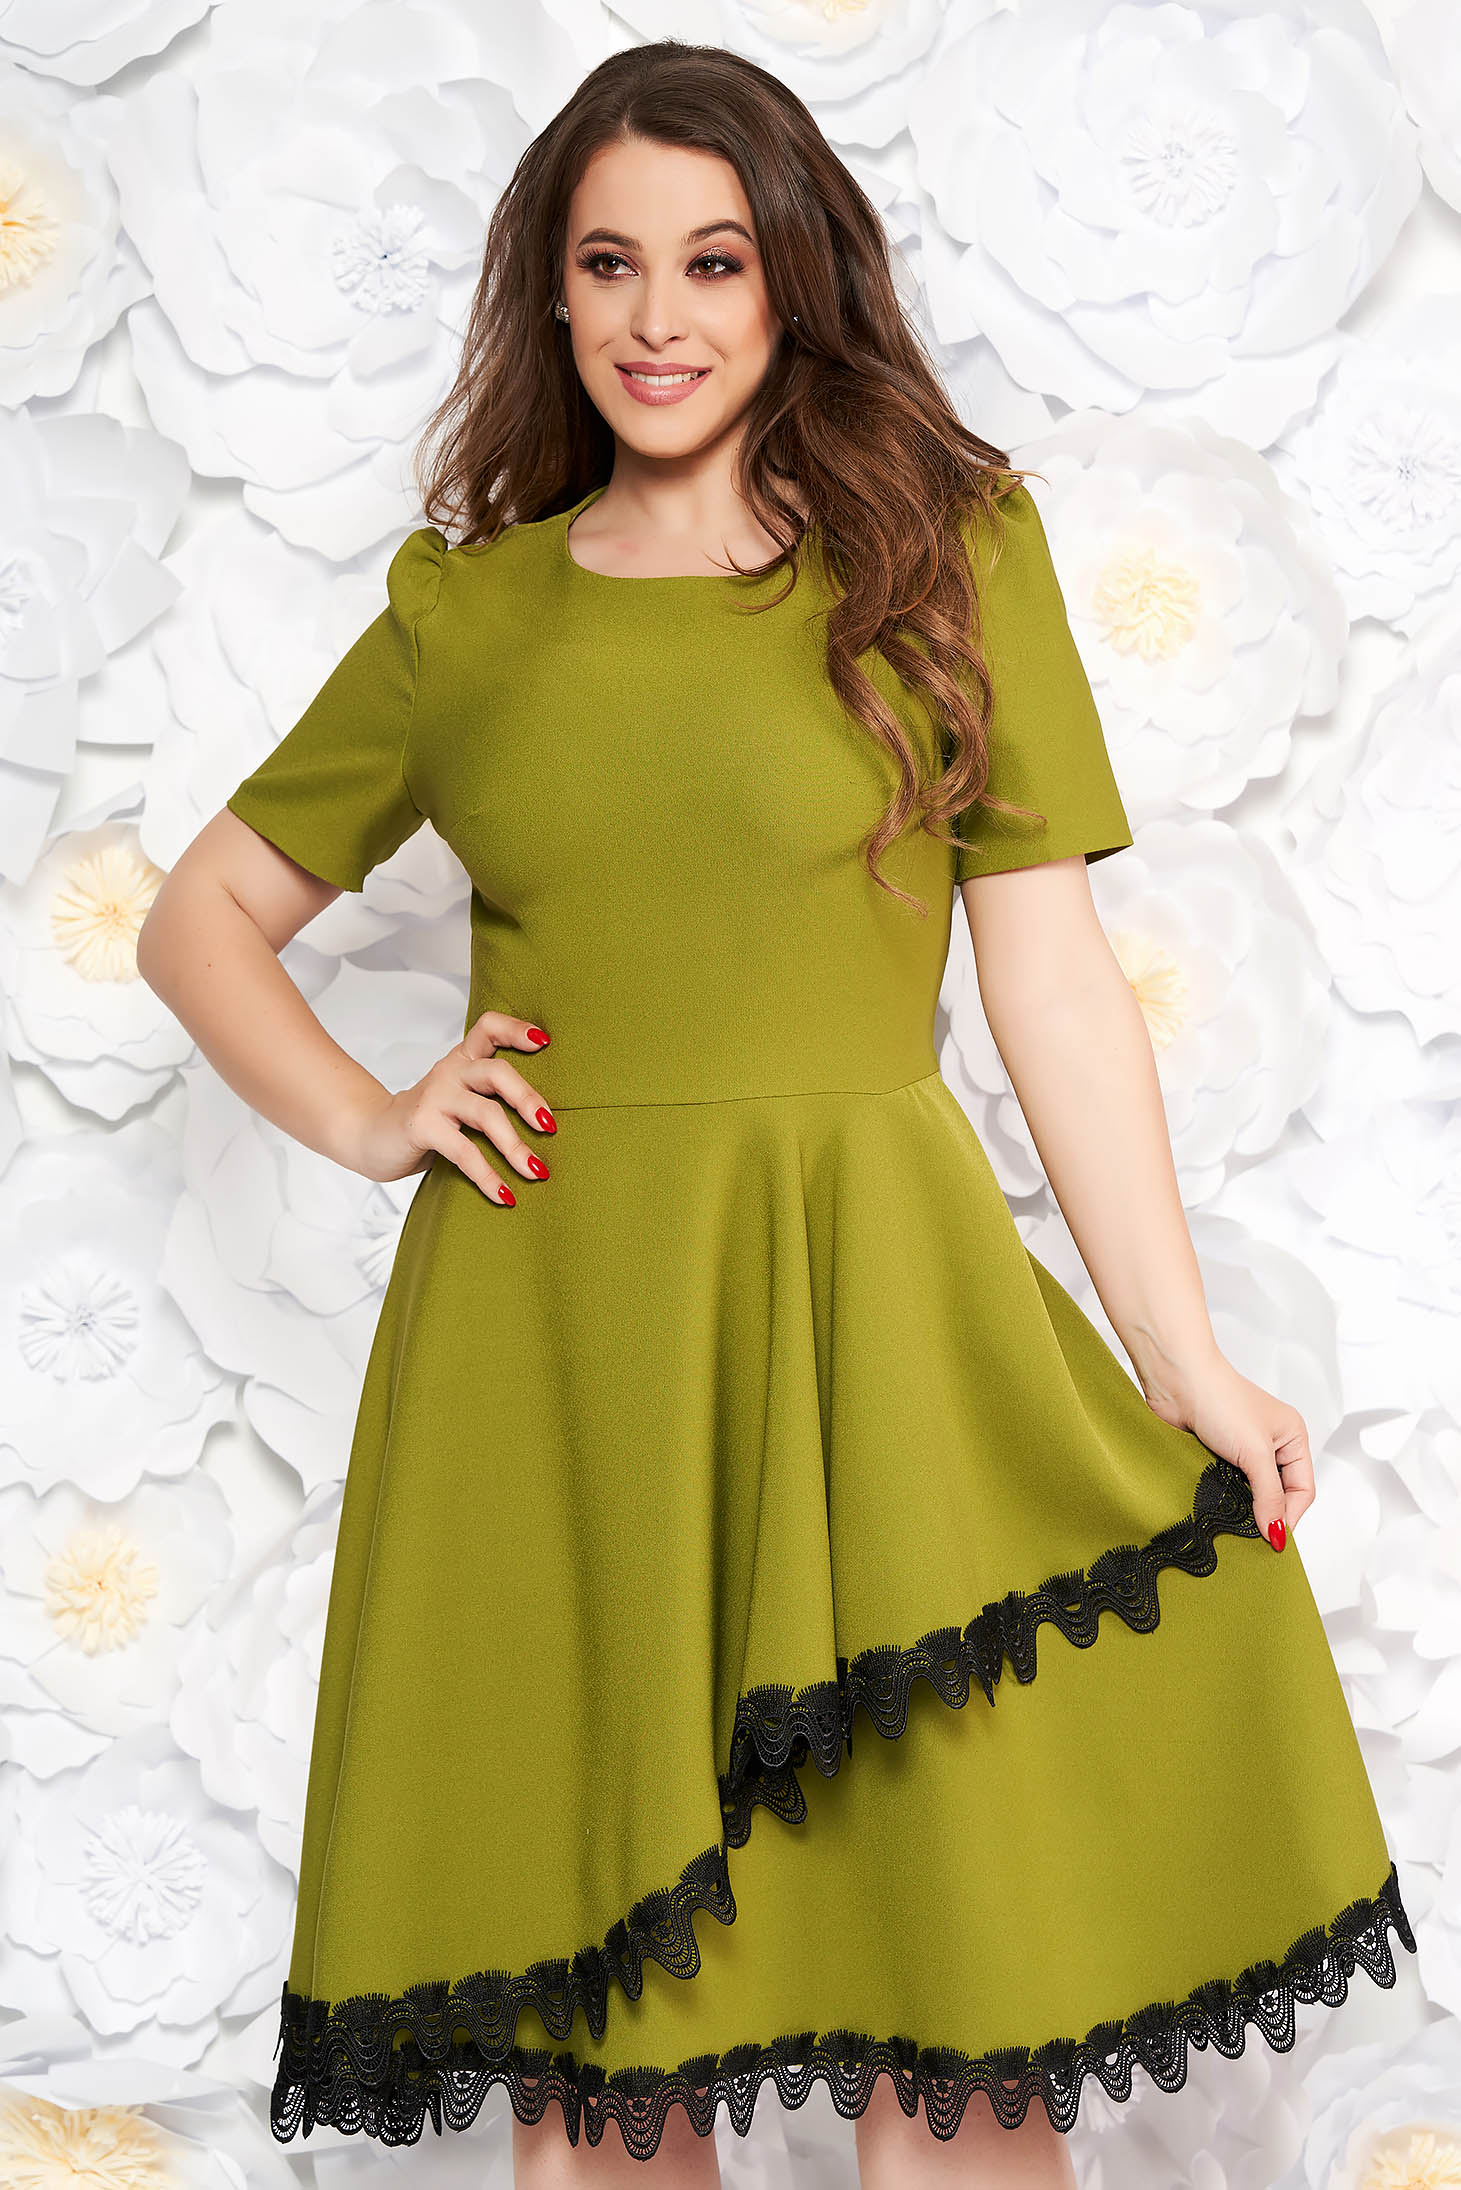 Khaki elegant midi cloche dress flexible thin fabric/cloth with lace details with ruffle details